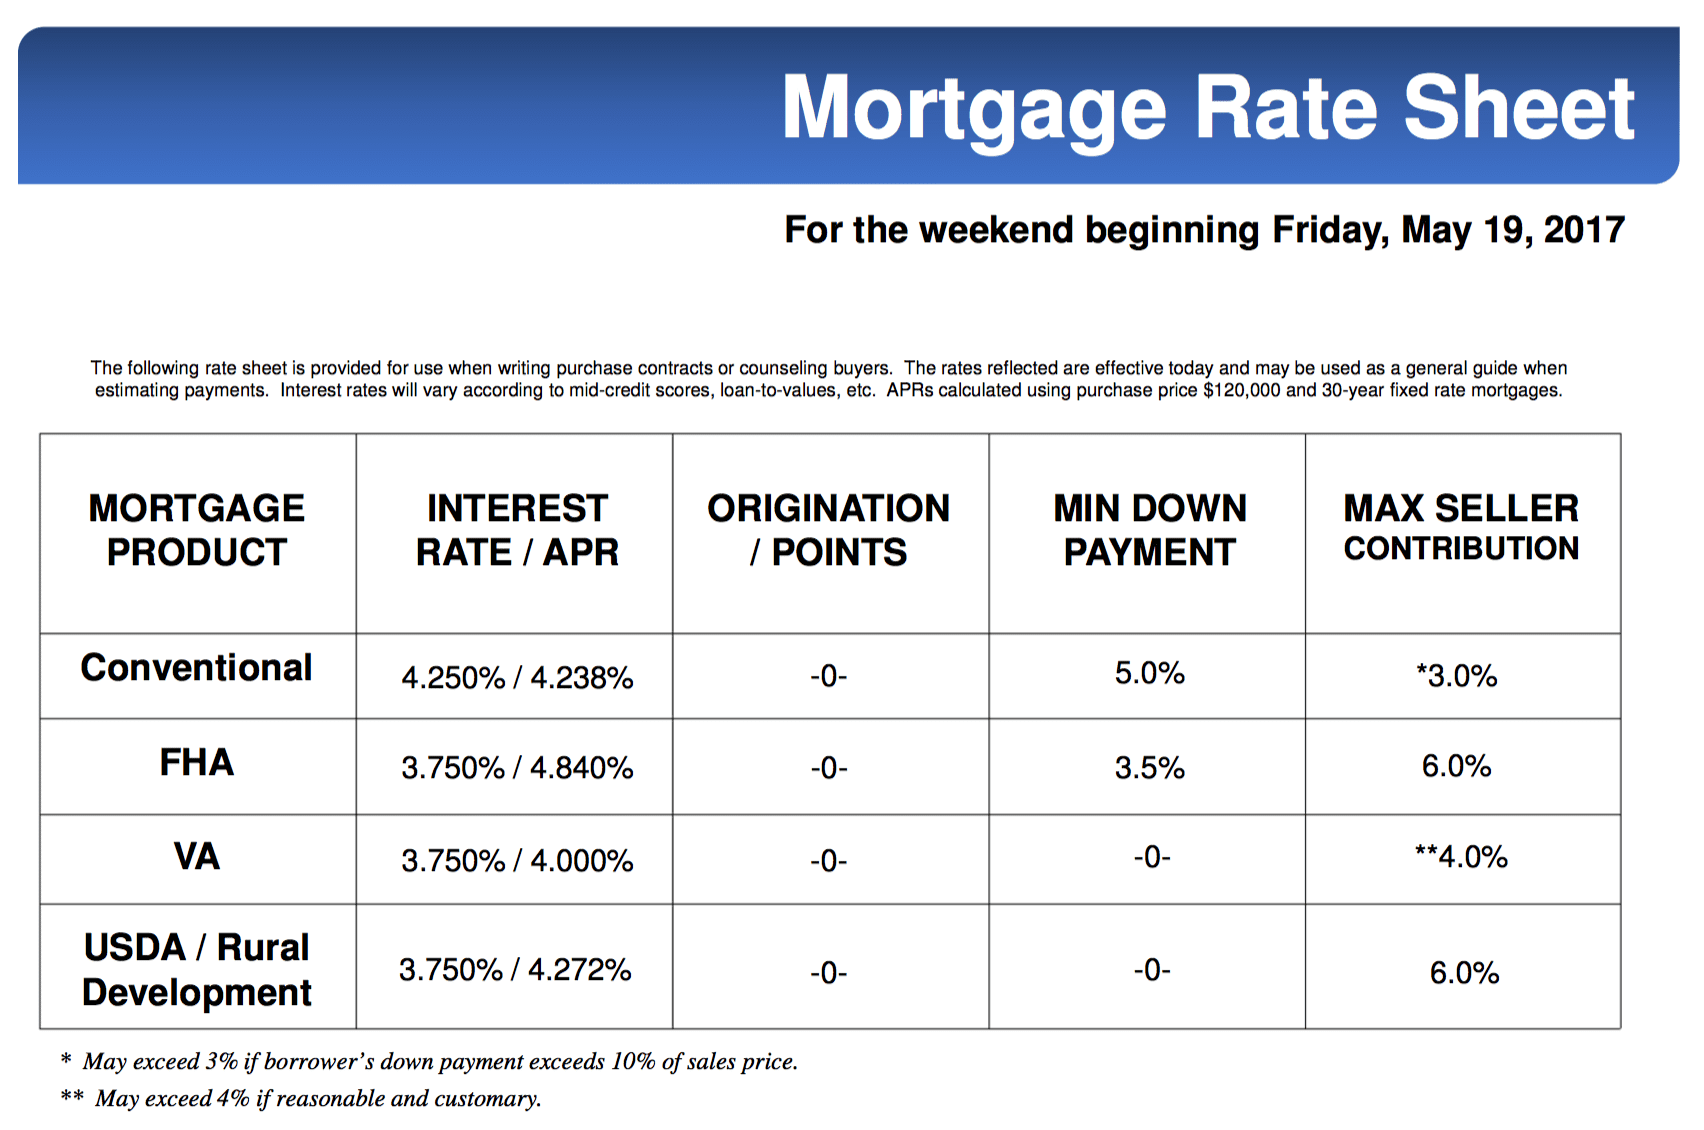 MORTGAGE RATES FOR THIS WEEKEND MAY 19